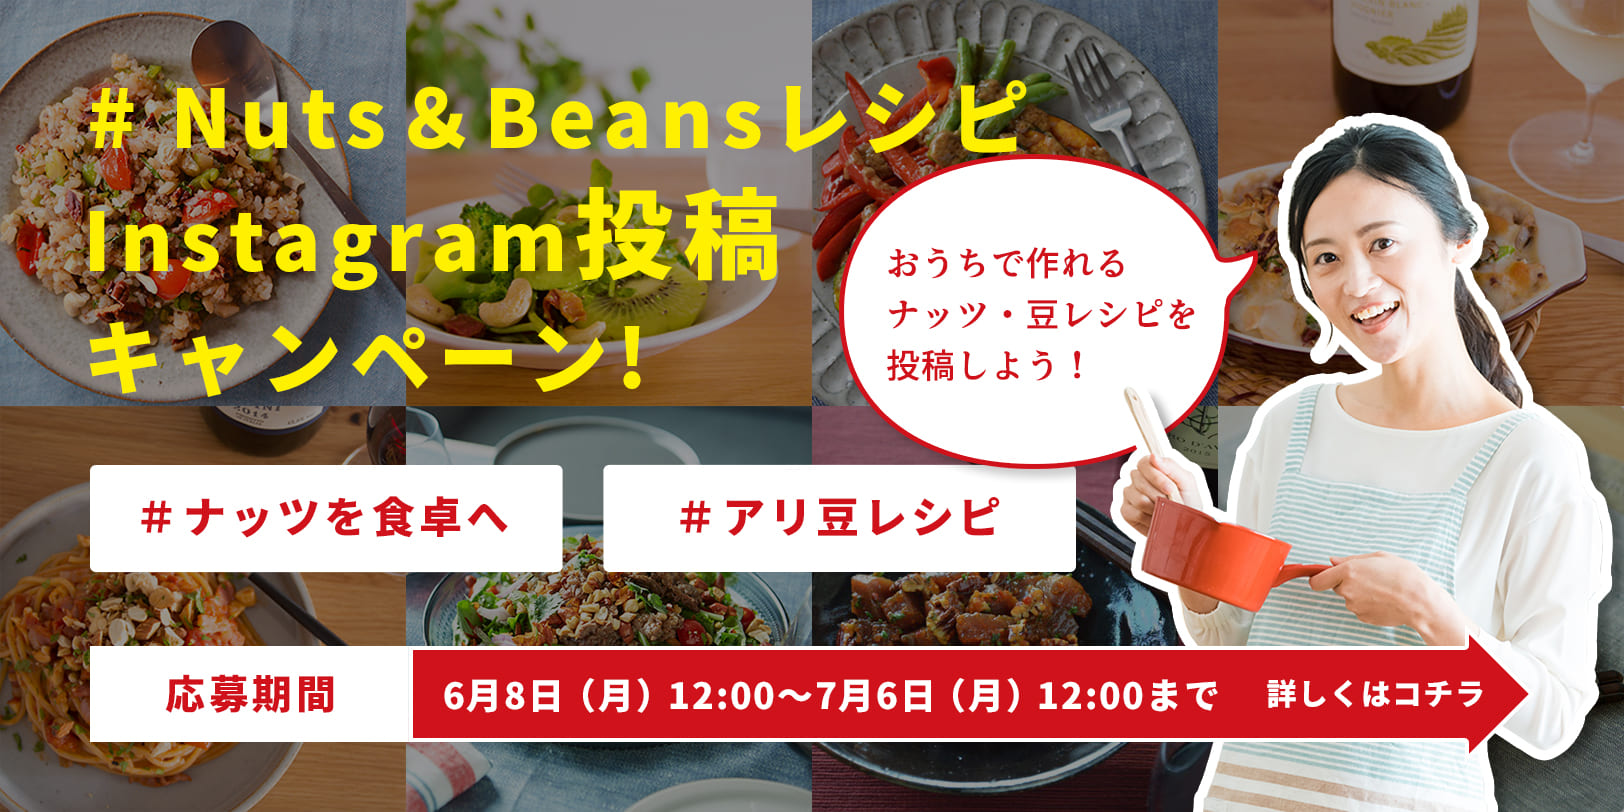 # Nuts&Beansレシピ Instagram投稿キャンペーン!